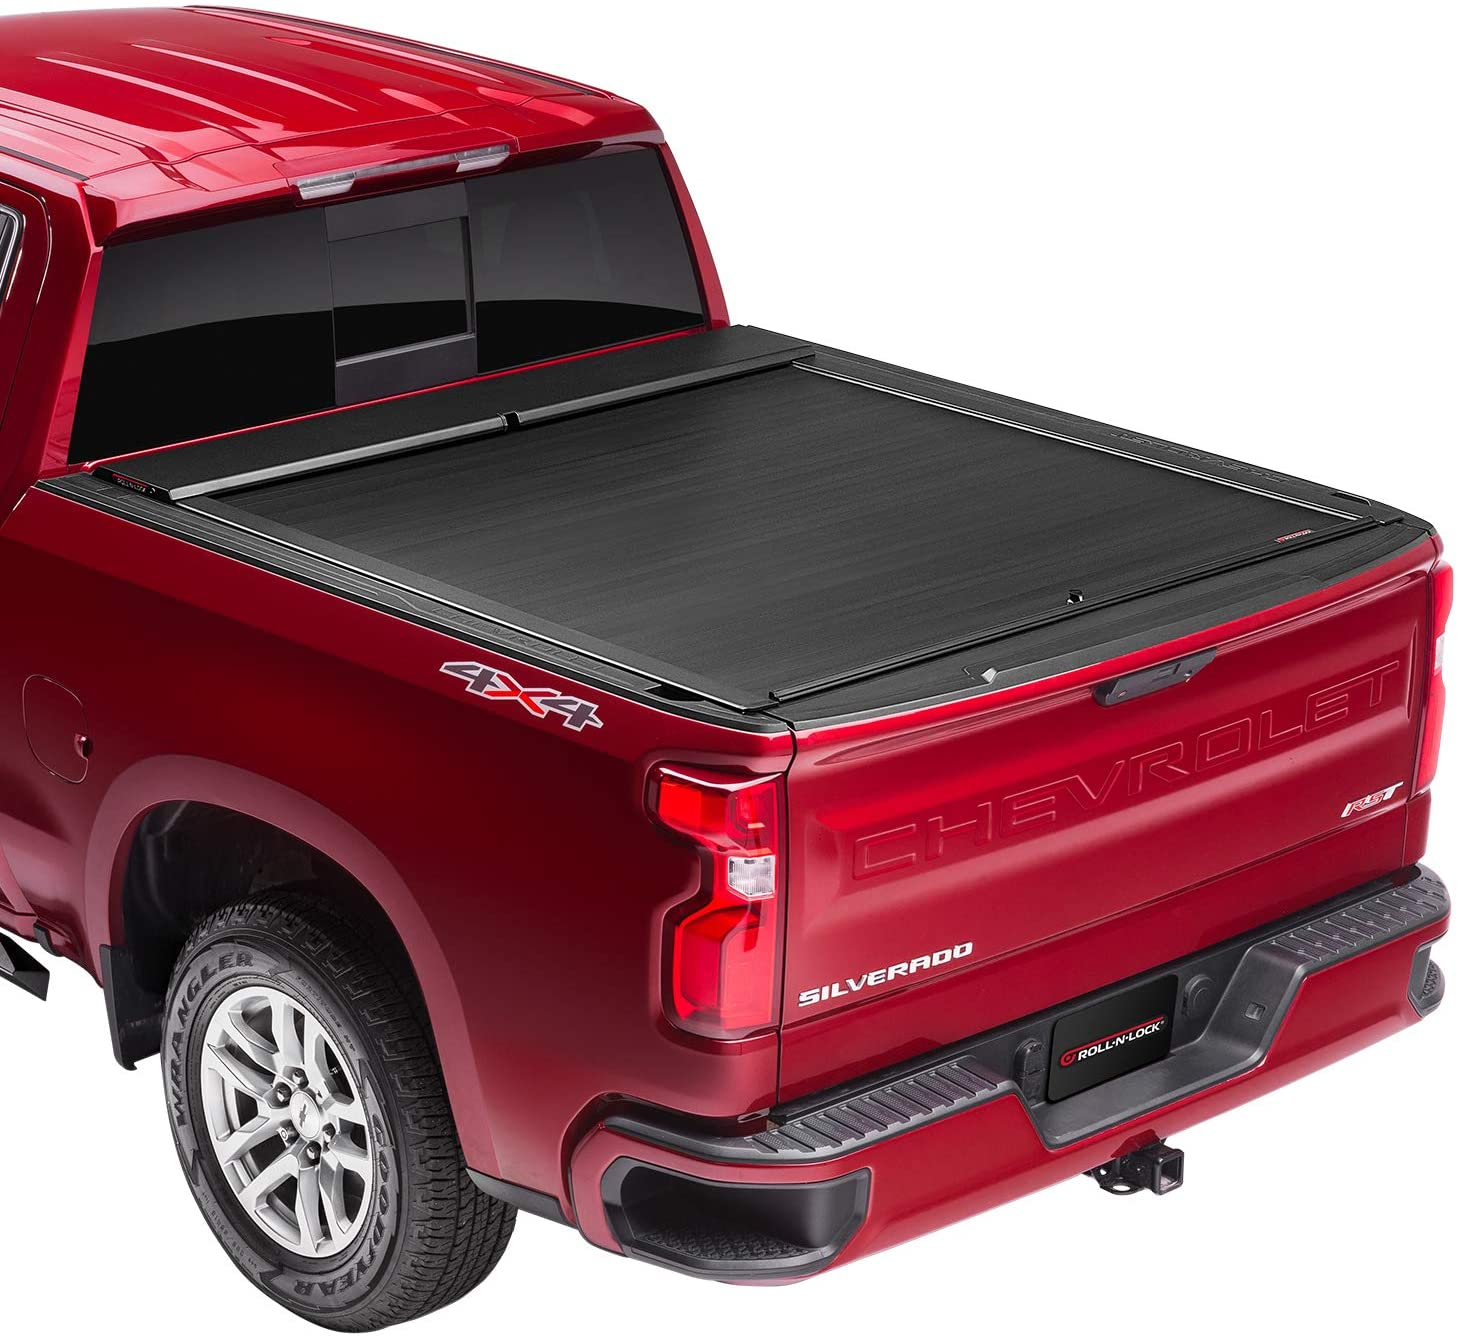 Common Variations That Can Affect Tonneau Cover Sizing